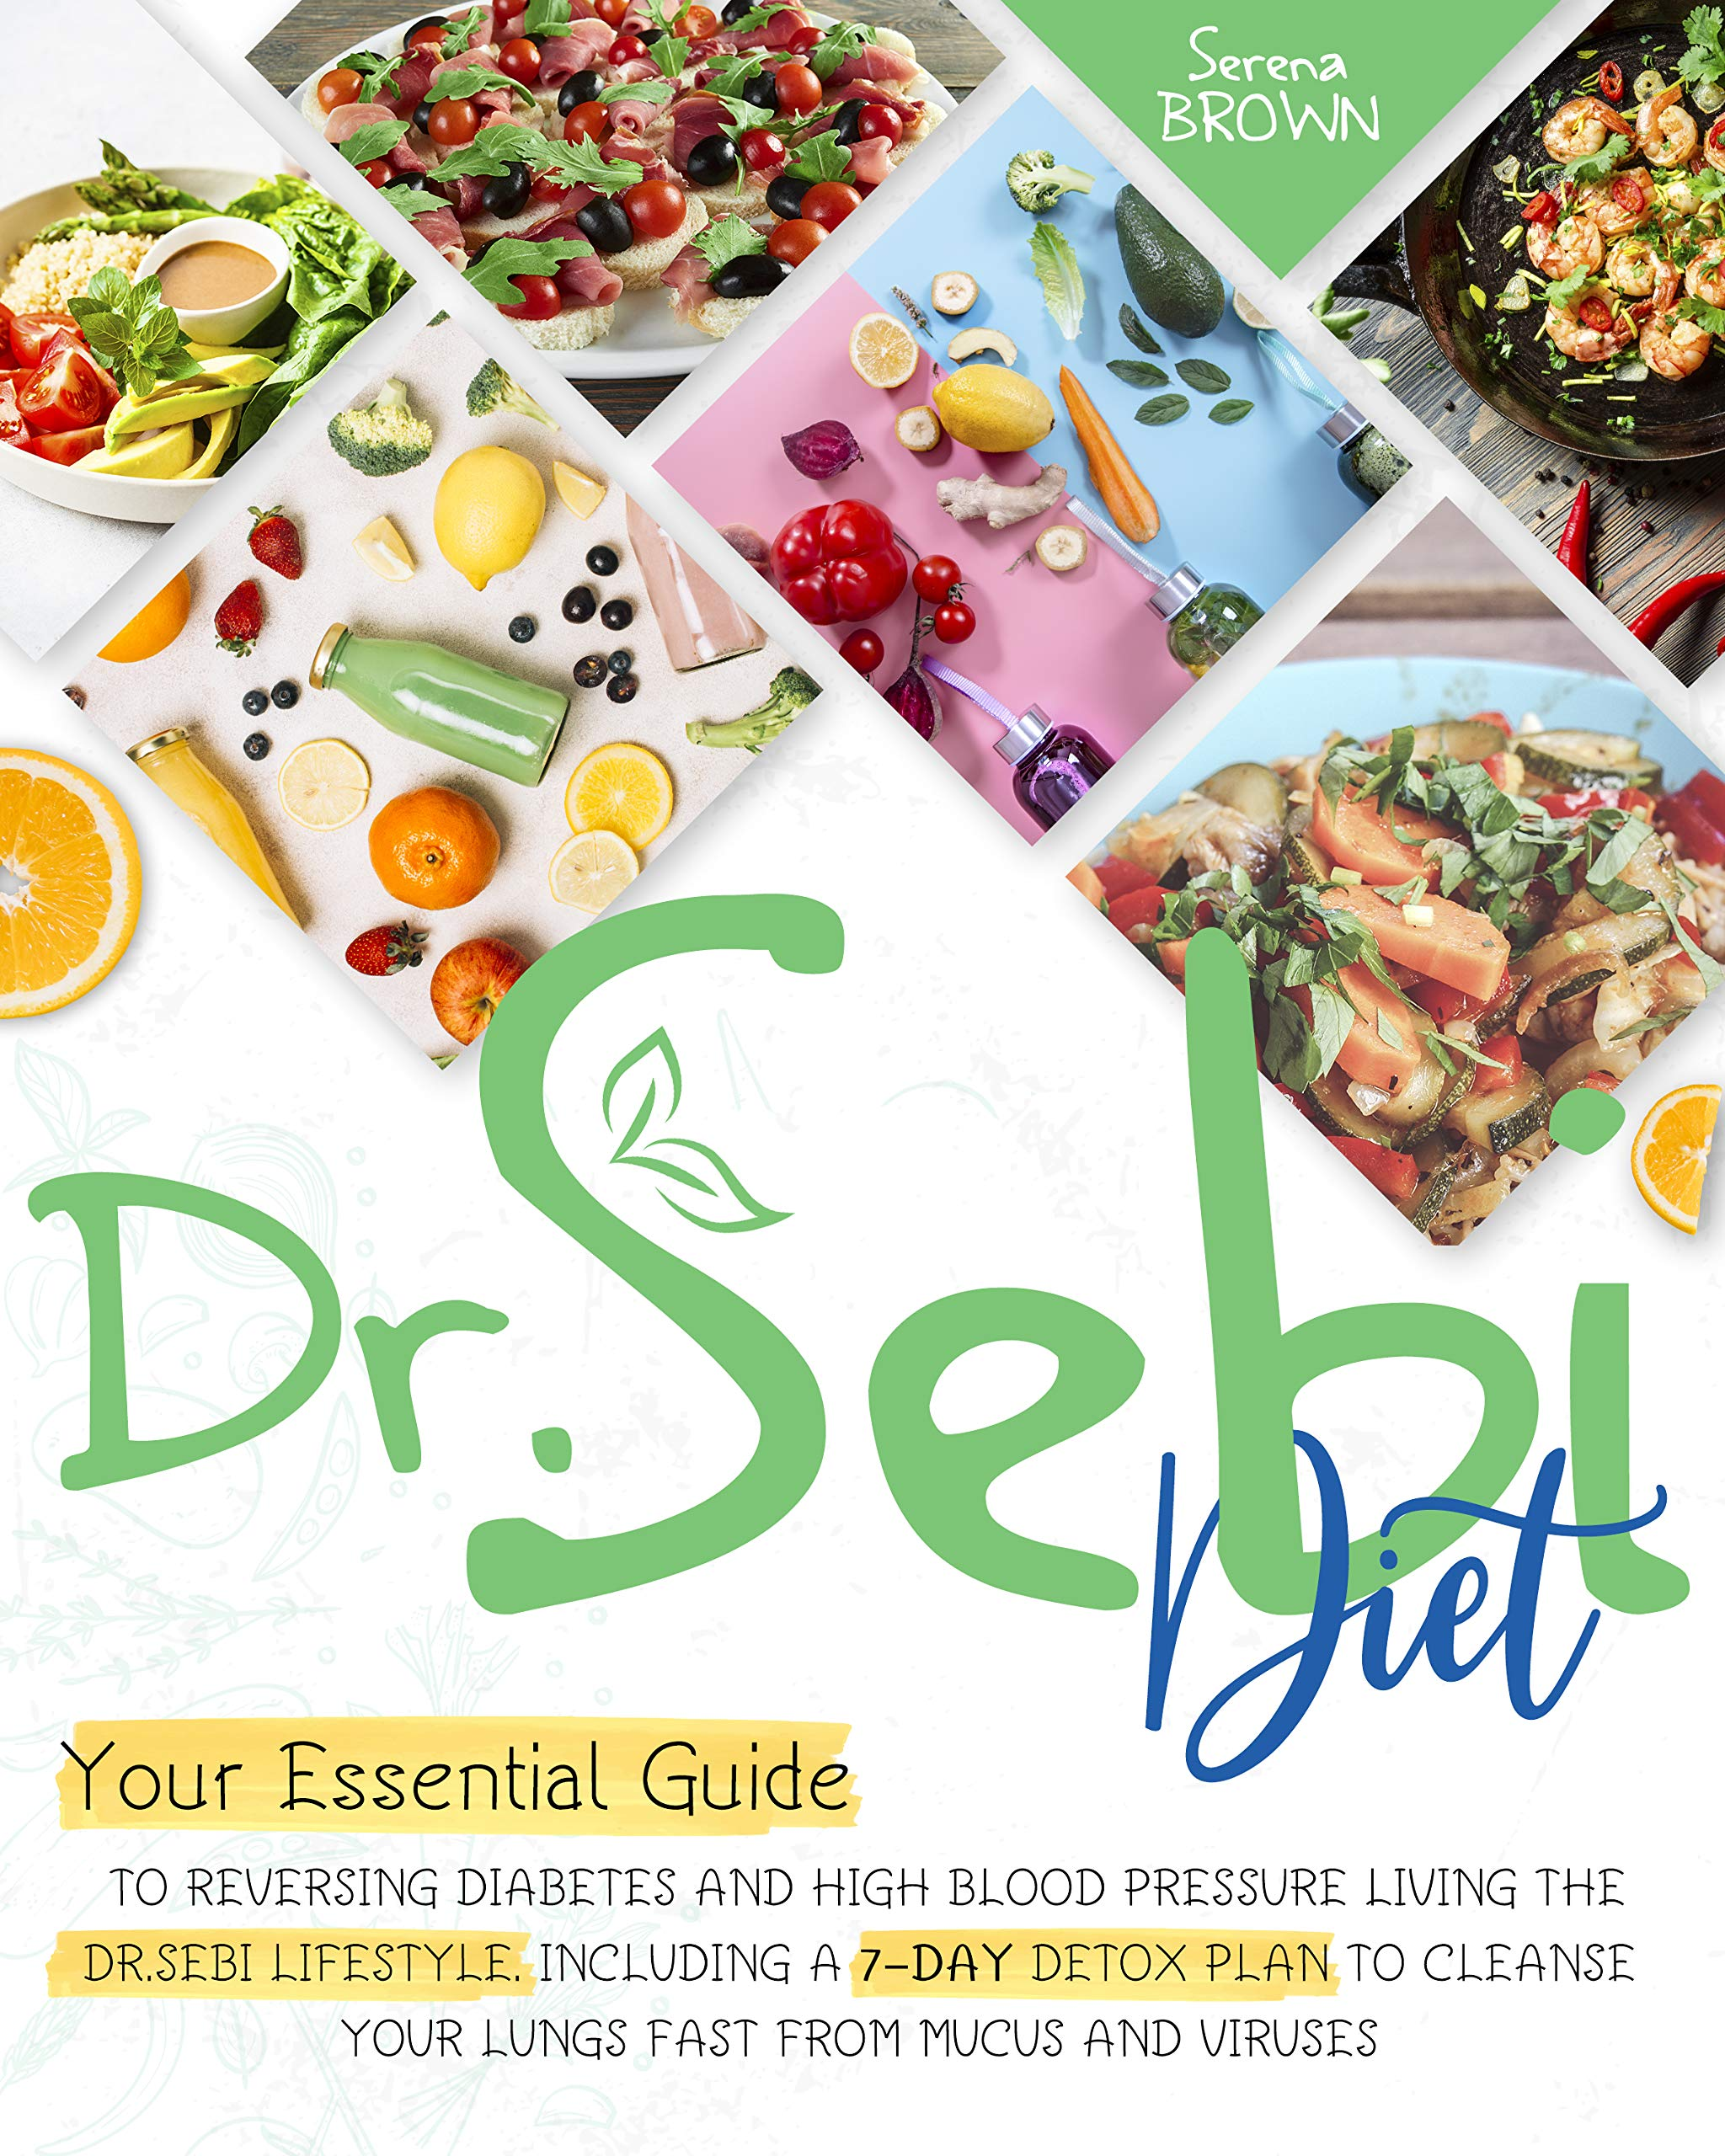 Dr.Sebi Diet: Your Essential Guide to Reversing Diabetes and High Blood Pressure By Living the Dr.Sebi Lifestyle | Including a 7-Day Detox Plan to Cleanse ... Sebi's Alkaline Diet & Cure for Disease)